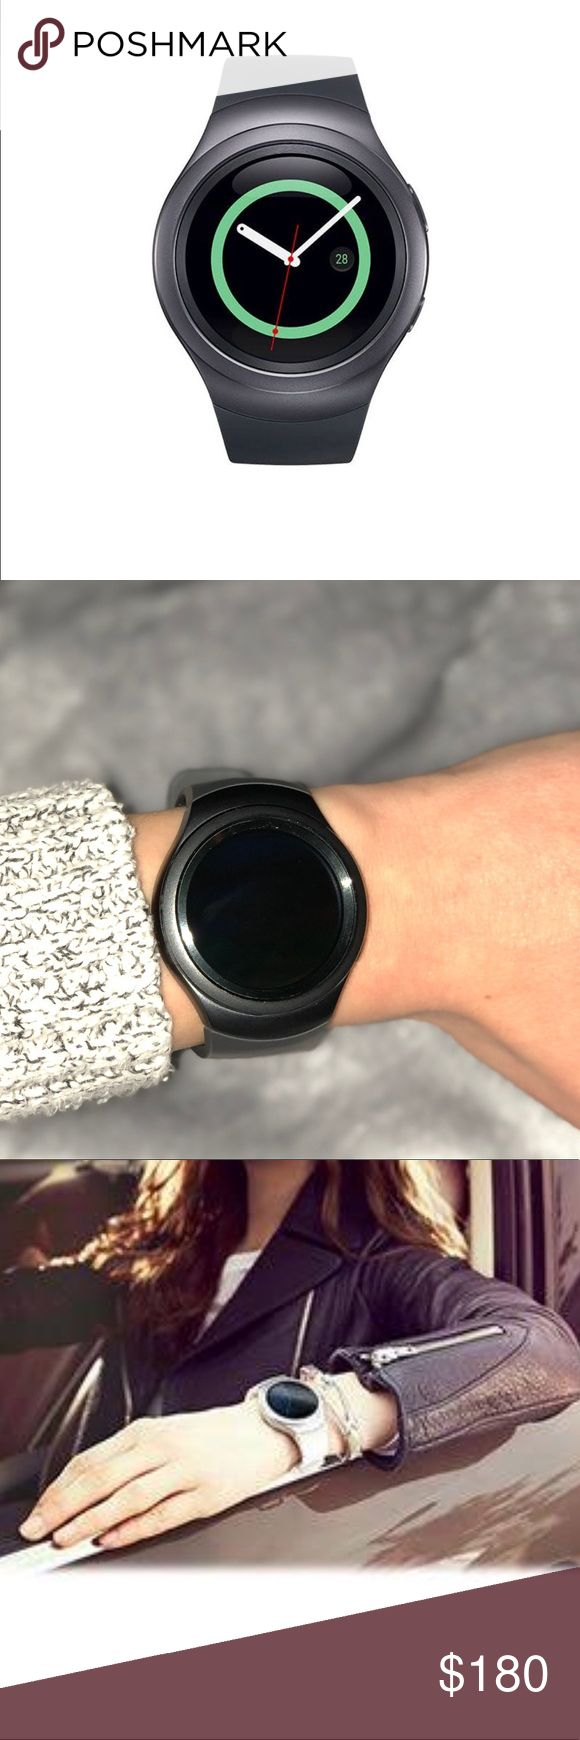 Gear S2 watch Dark Grey No scratches on glass, like new. Works great! Compatible with iPhone. samsung Other